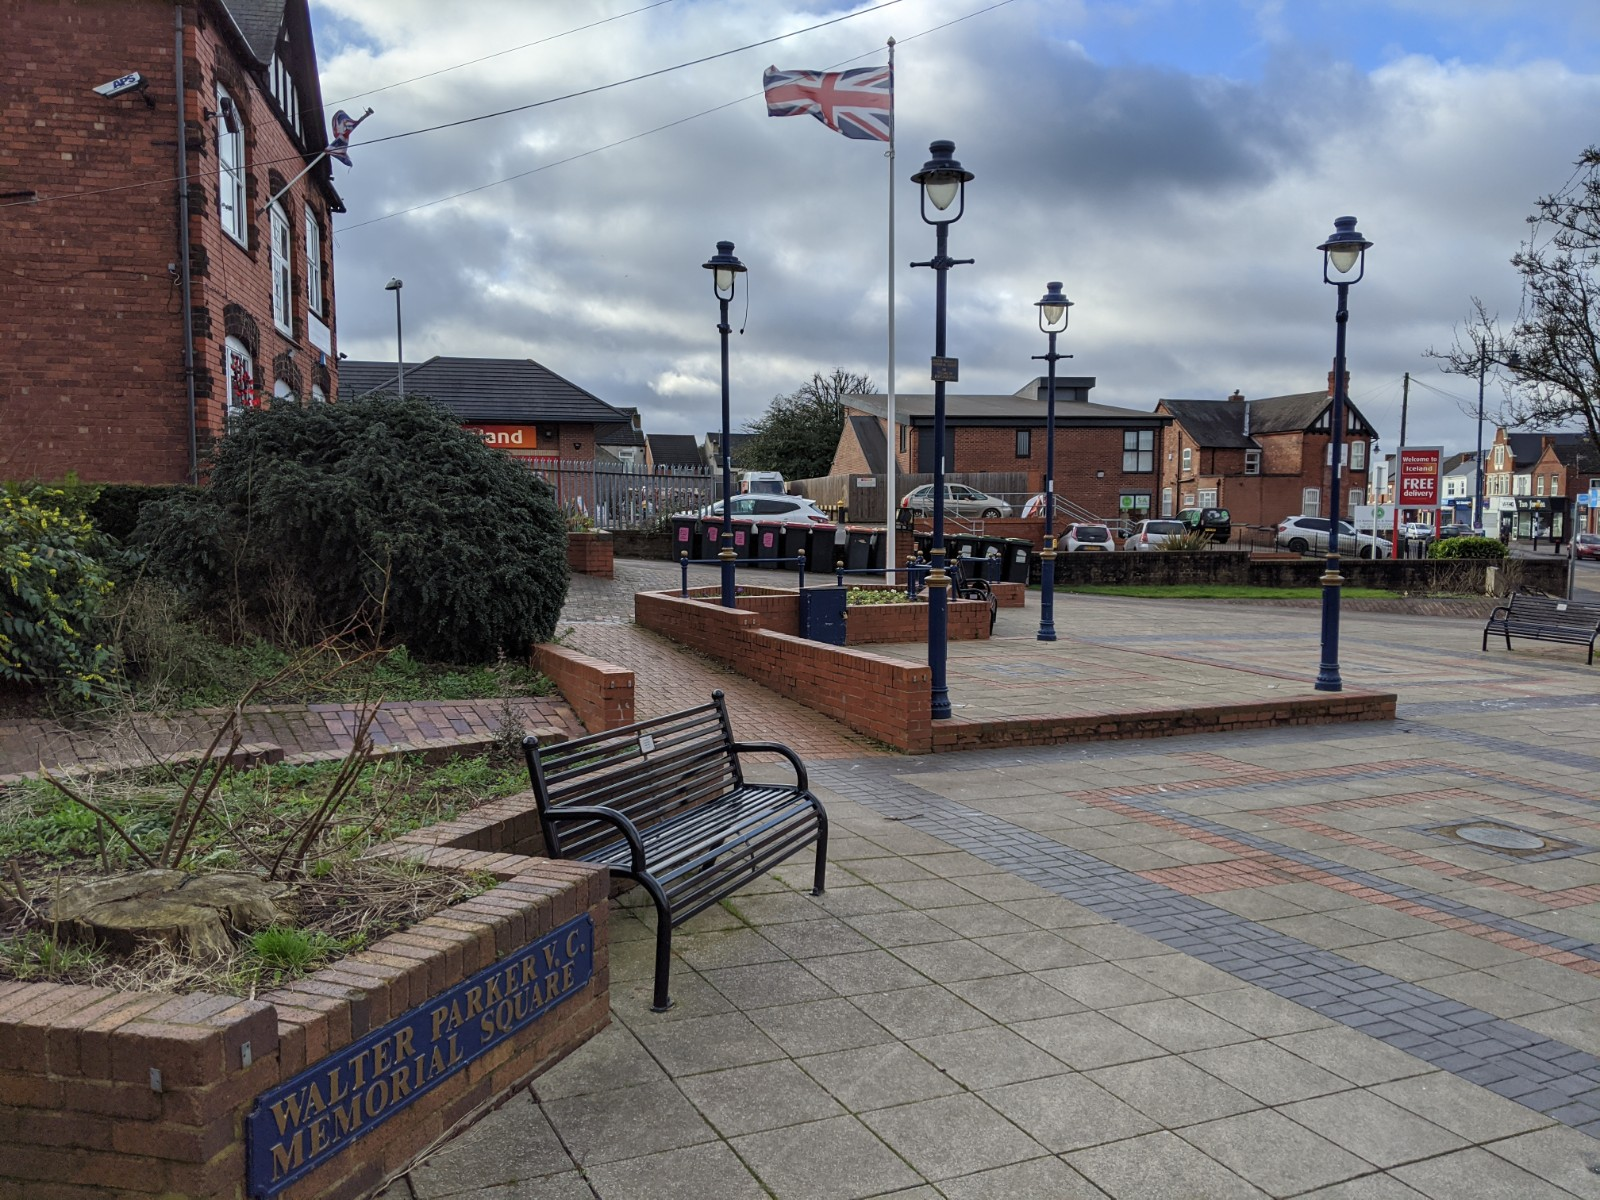 2020 VISION FOR STAPLEFORD AS TOWN ANNOUNCES GOVERNMENT FUND PLANS